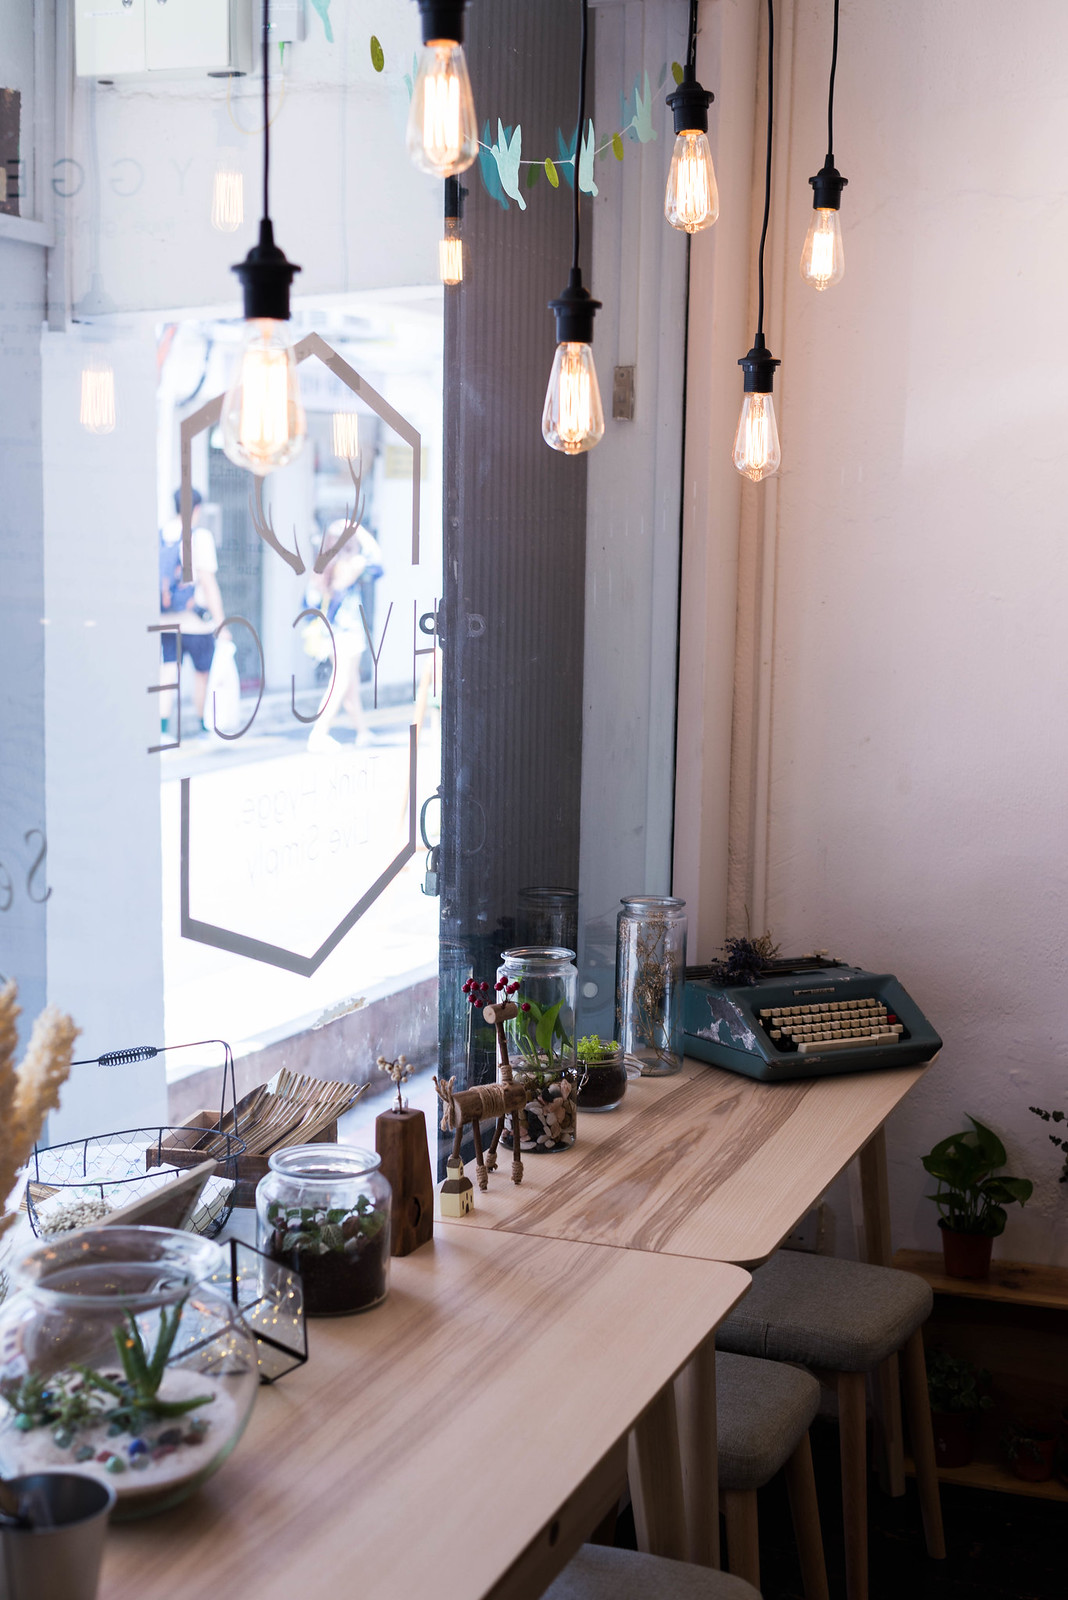 Hygge_Cafe_Interior